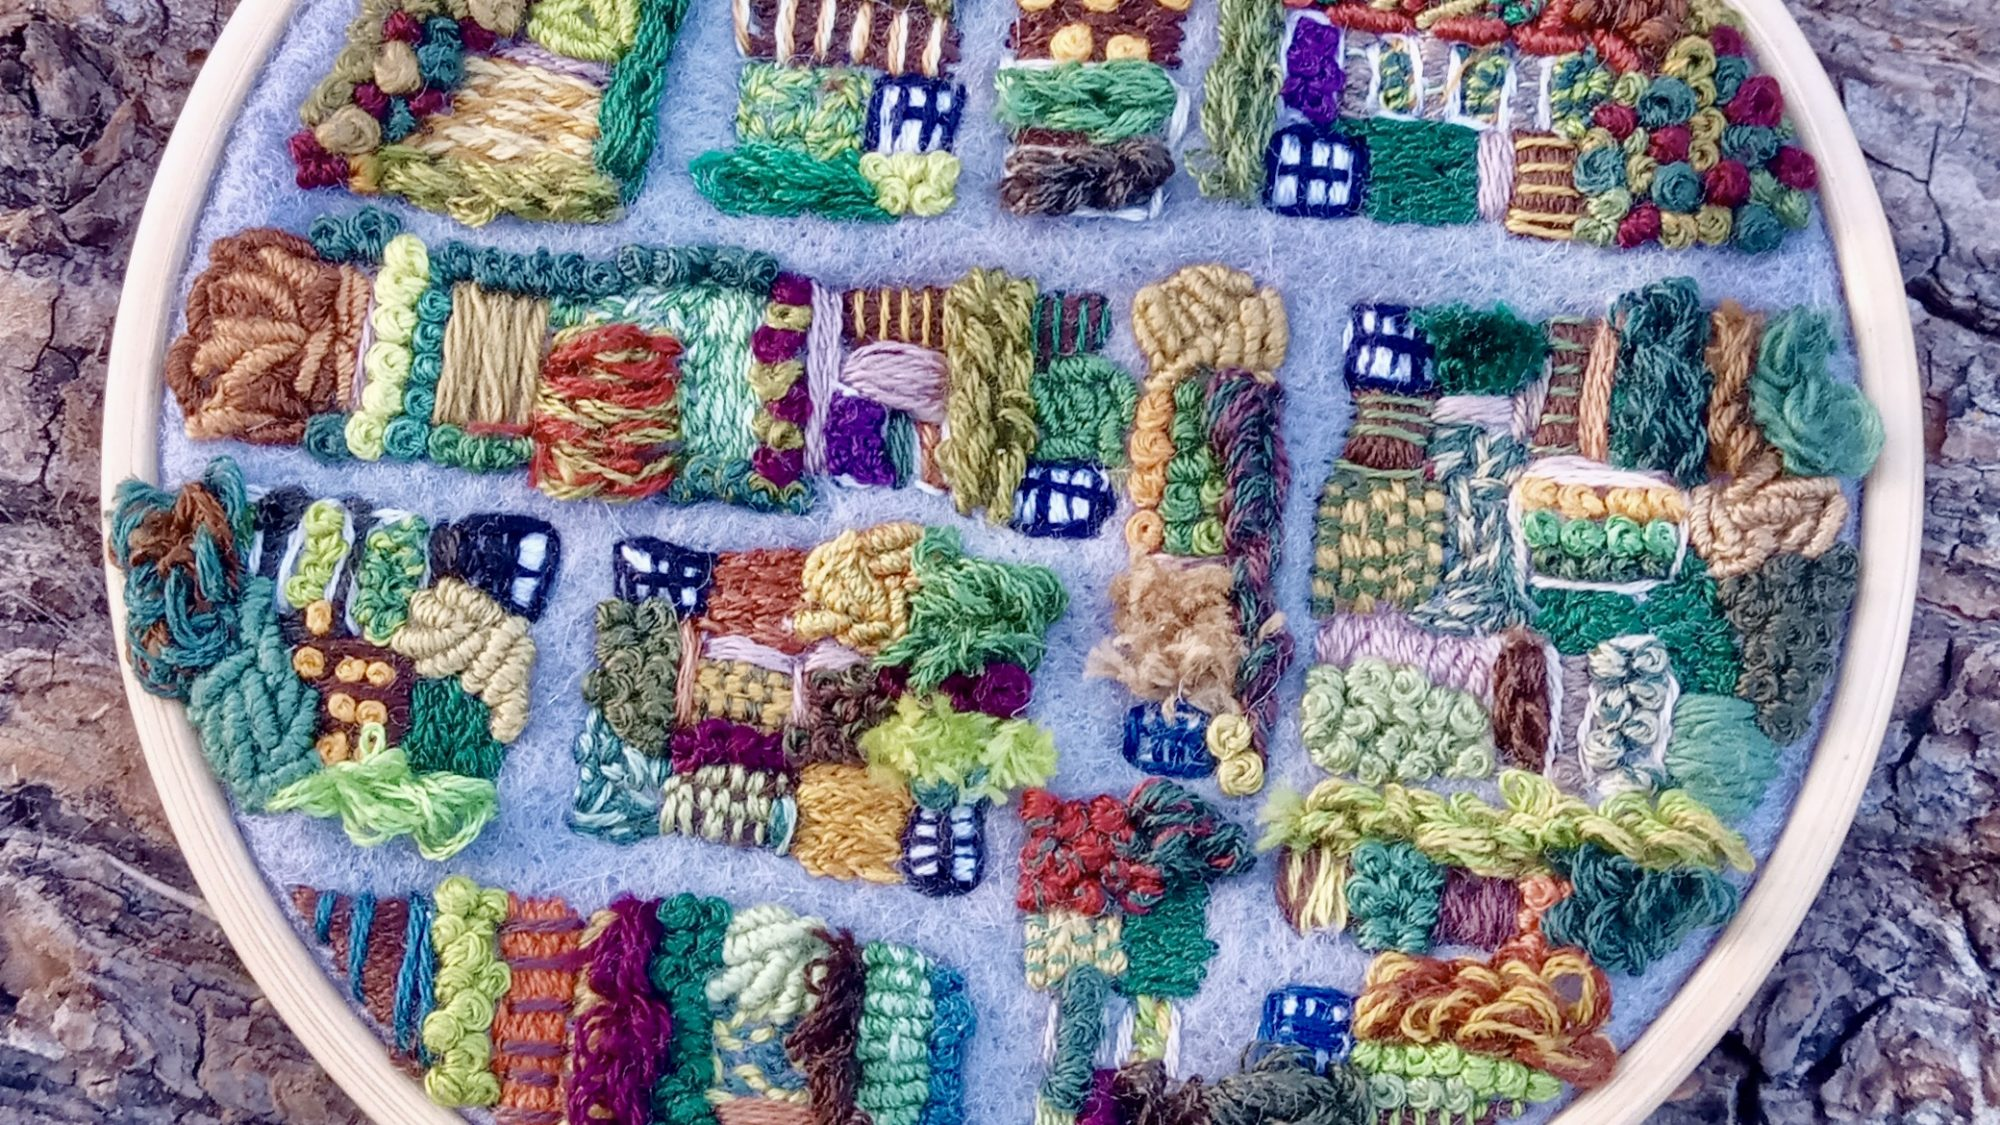 an allotment embroidered on a hoop